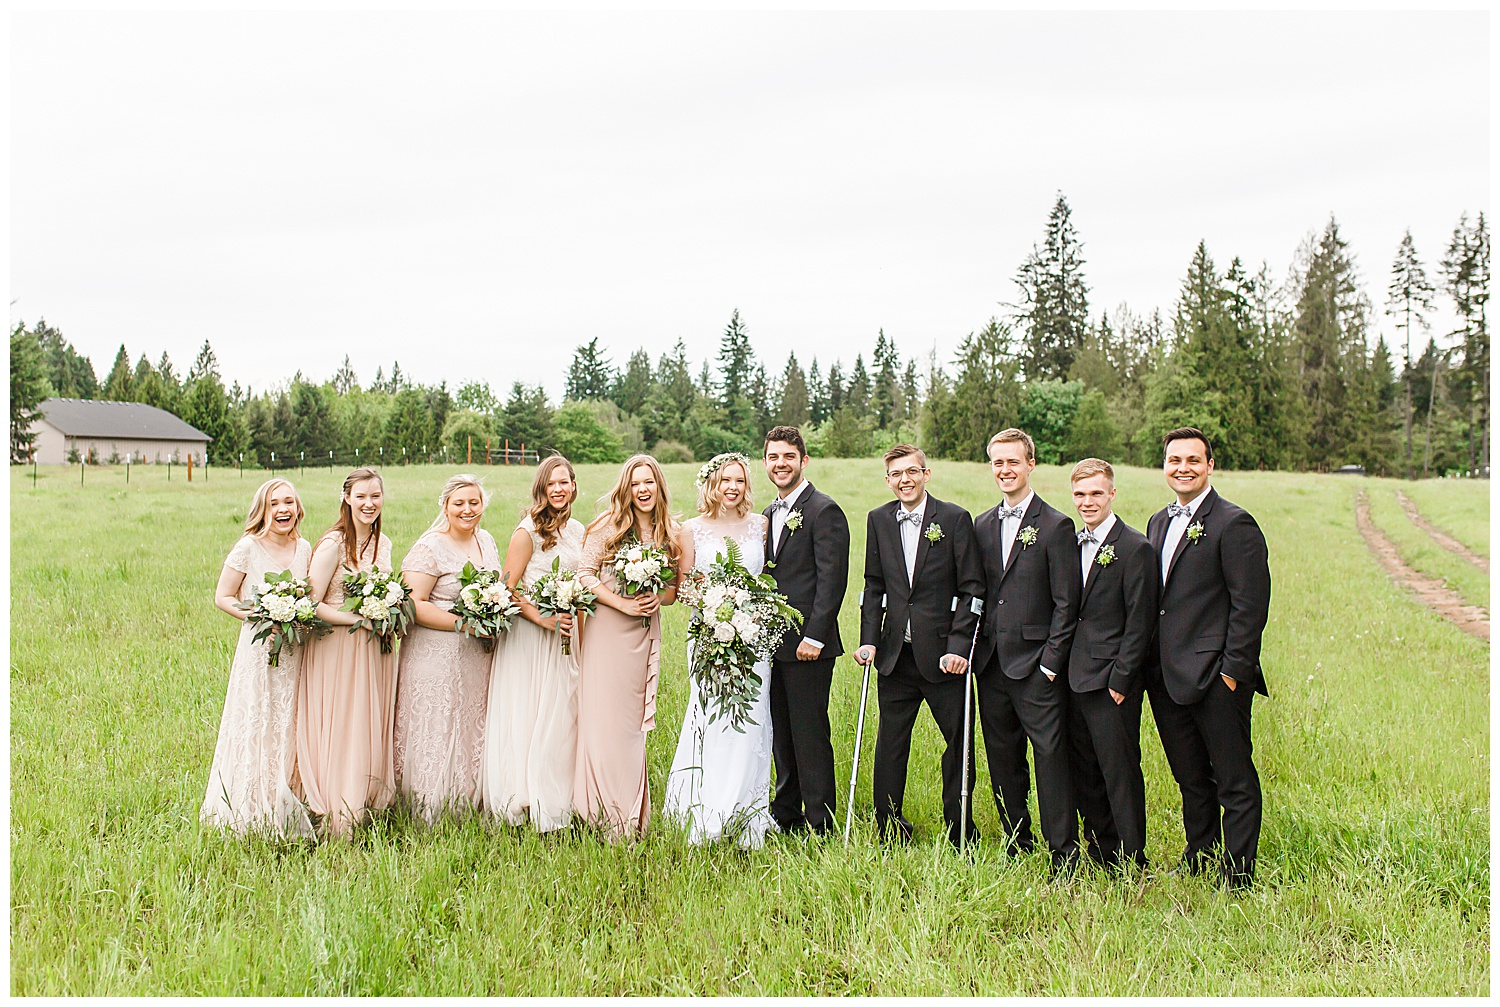 Brush_Prairie_Washington_Wedding_May_Farm_Backyard_Family_Photographer_Conzatti_0025.jpg